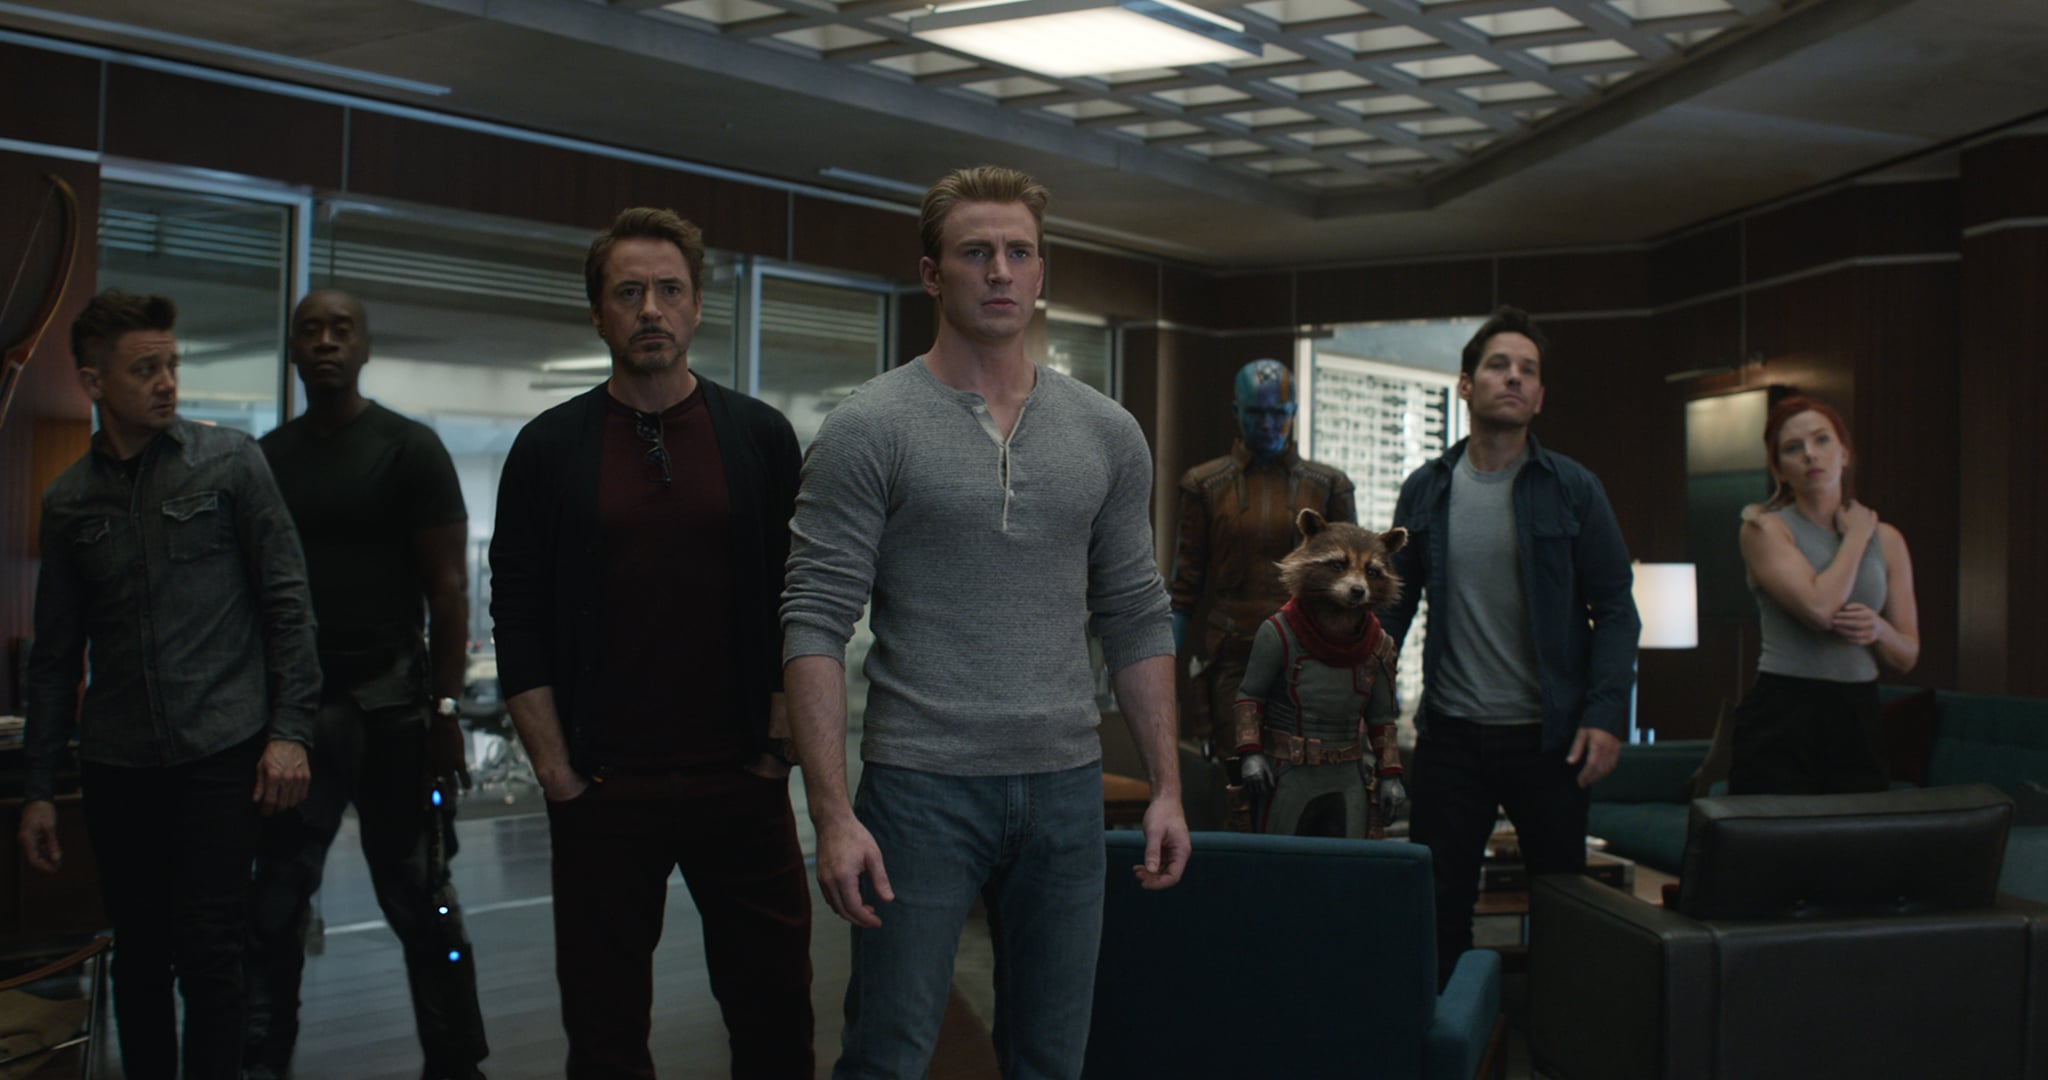 Sorry, Folks! Avengers: Endgame Won't Be on Netflix For a Very Good Reason